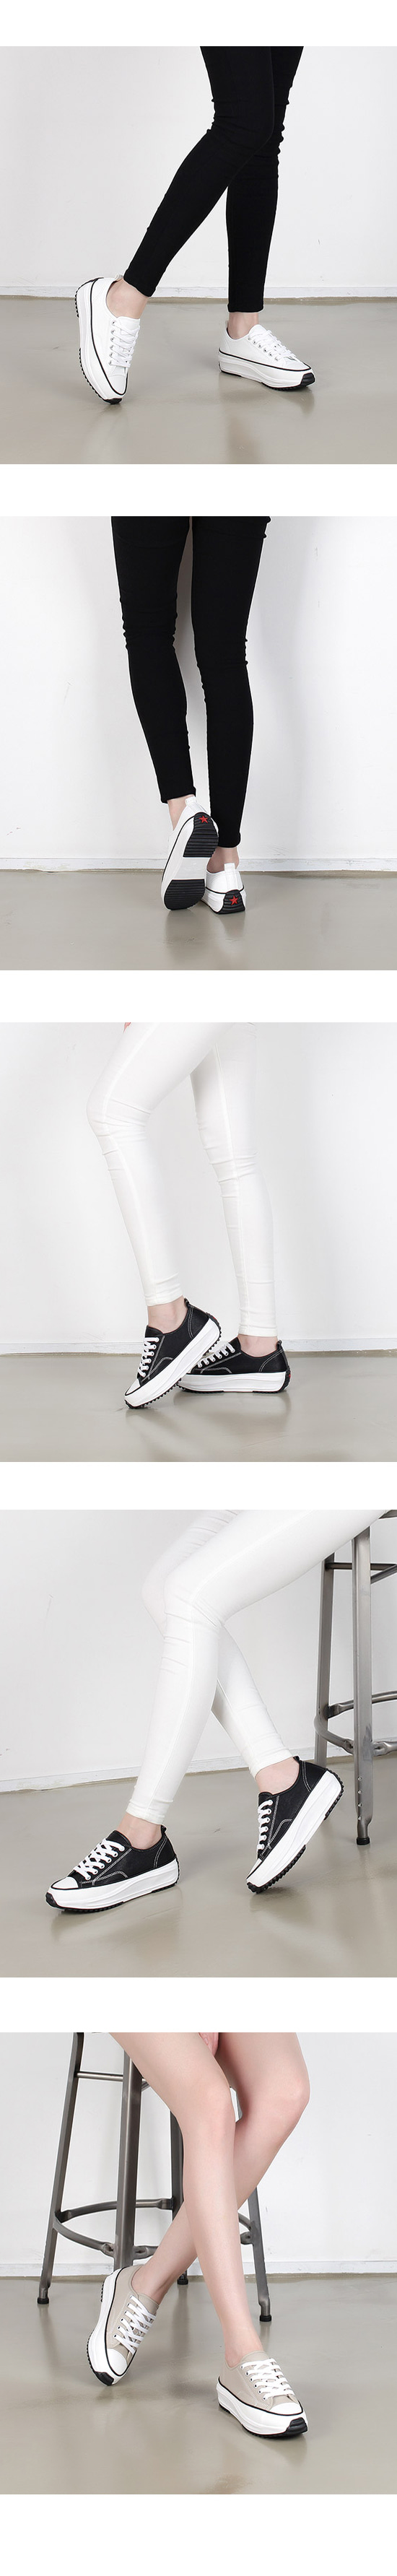 Star Lace-up Cushion Sneakers Black